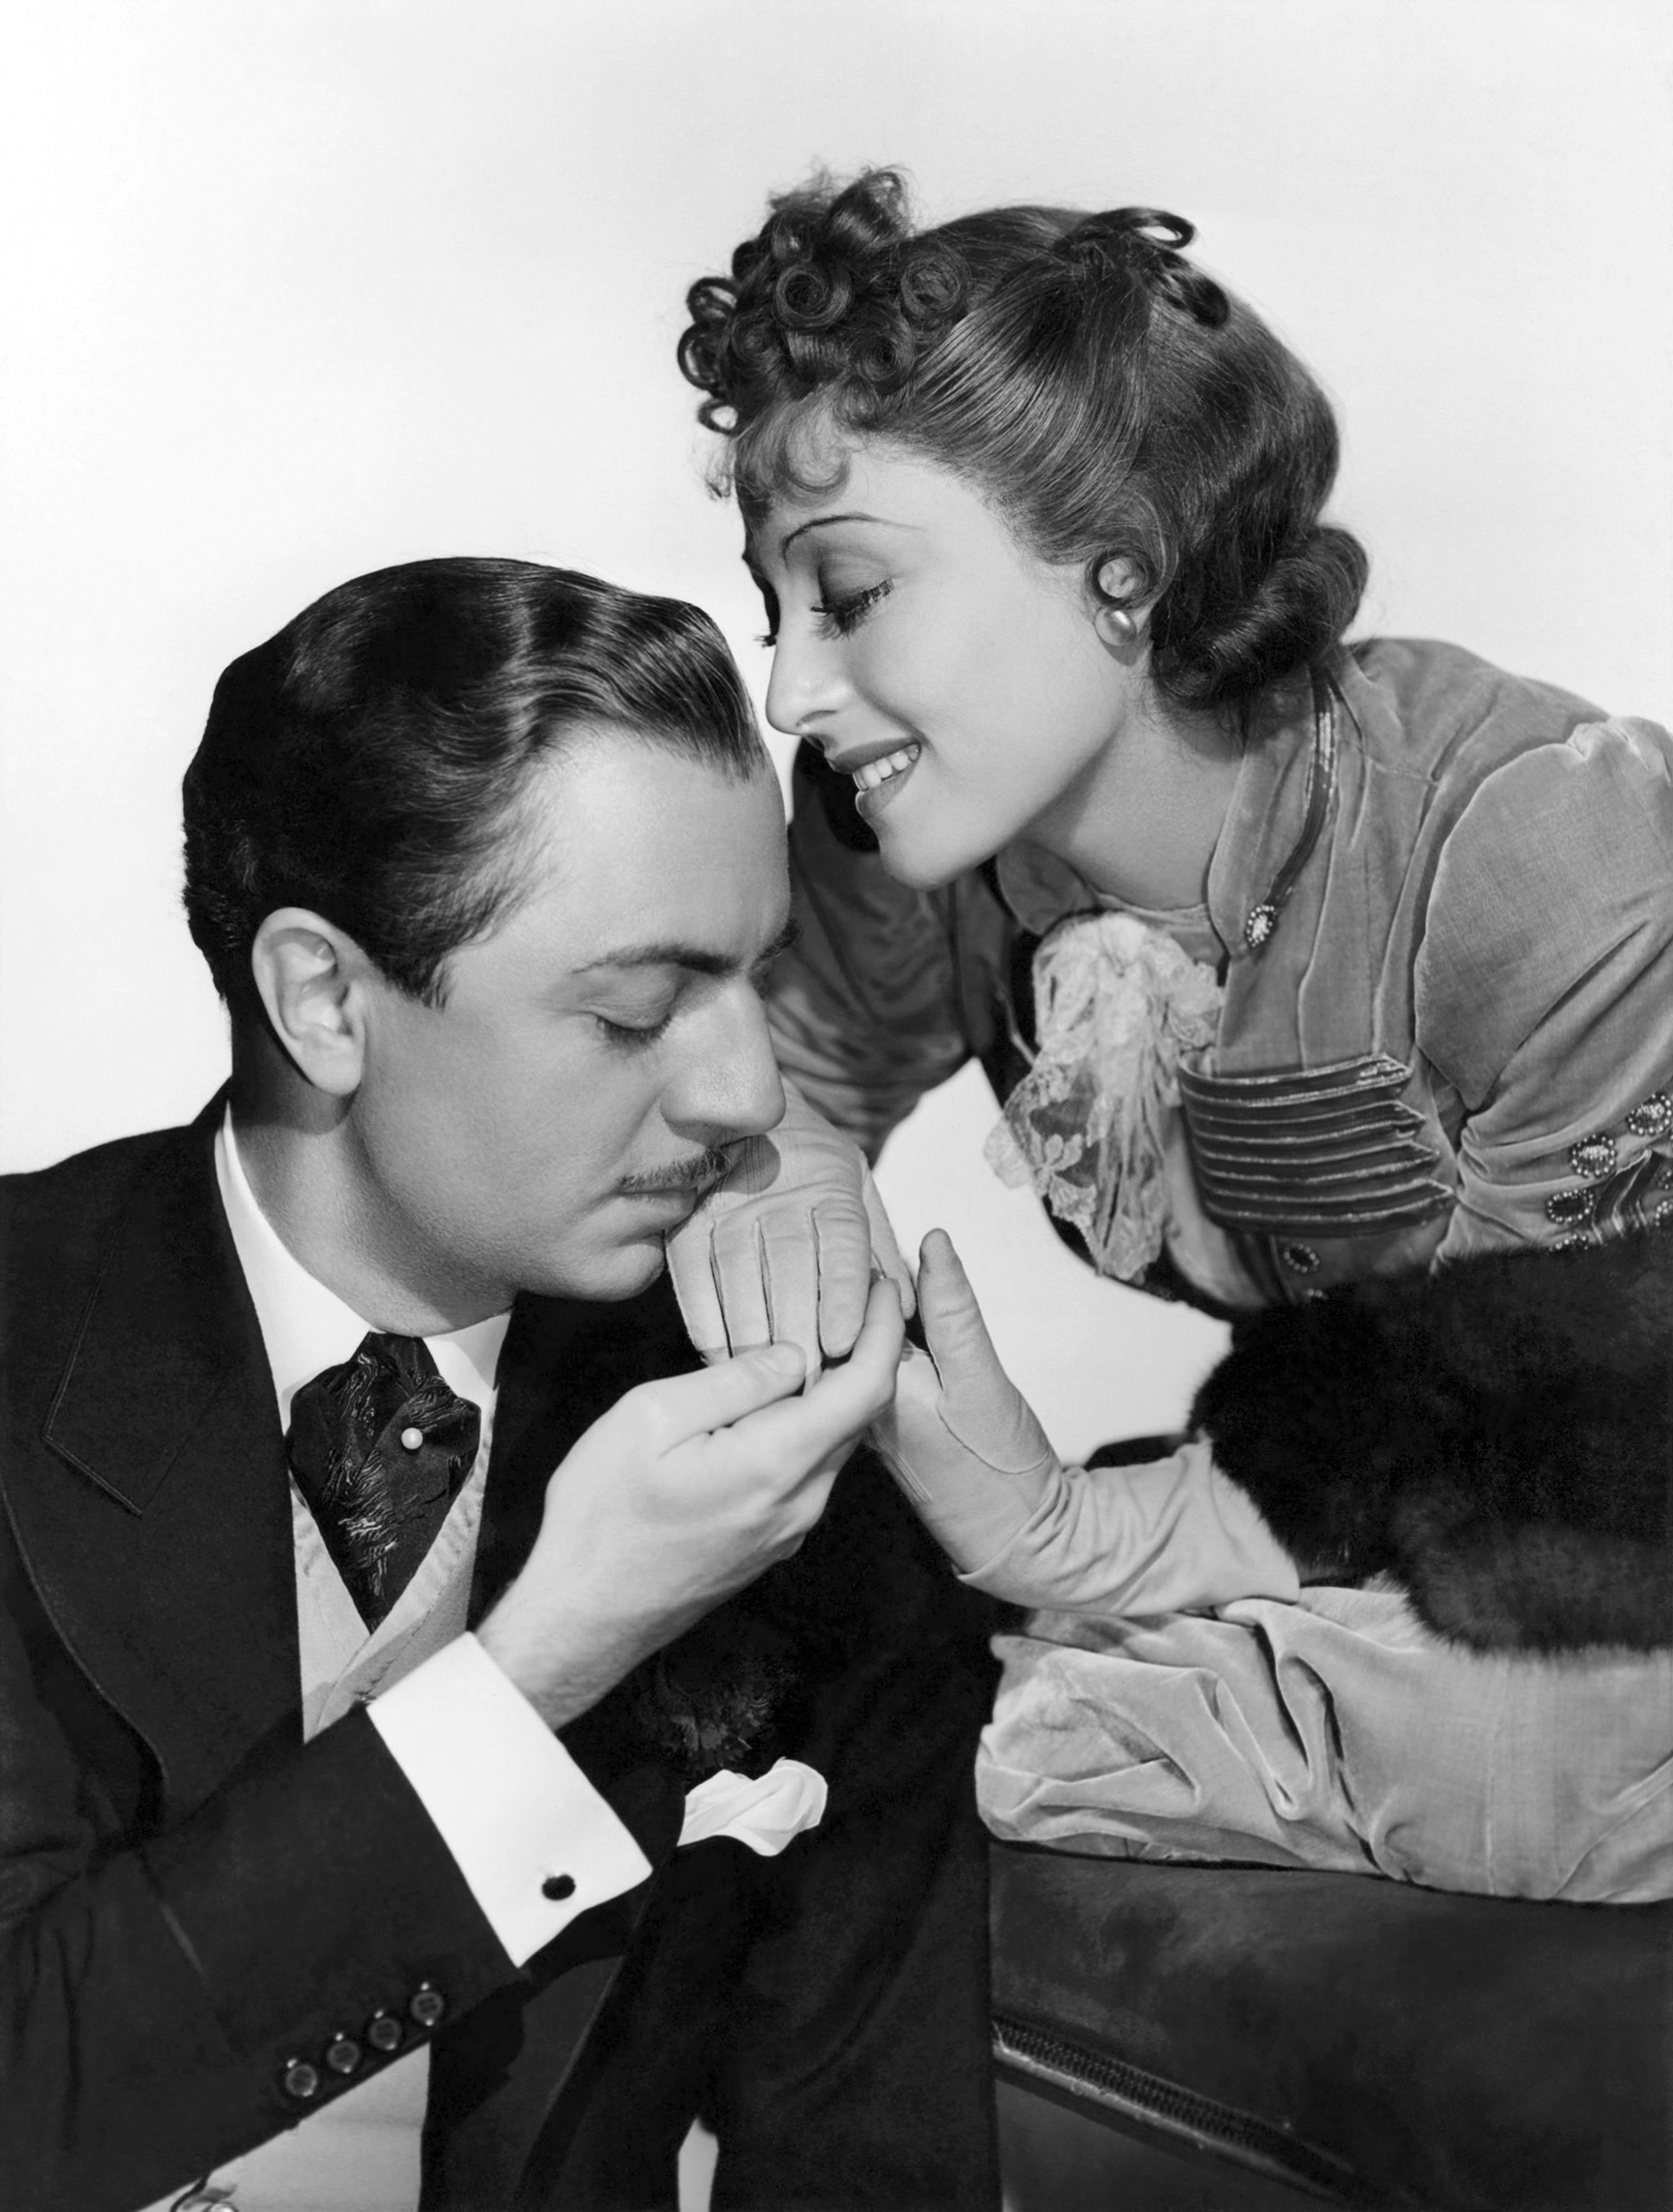 William Powell in The Emperor's Candlesticks With Luise Rainer (Courtesy of Sarah and Michelle)